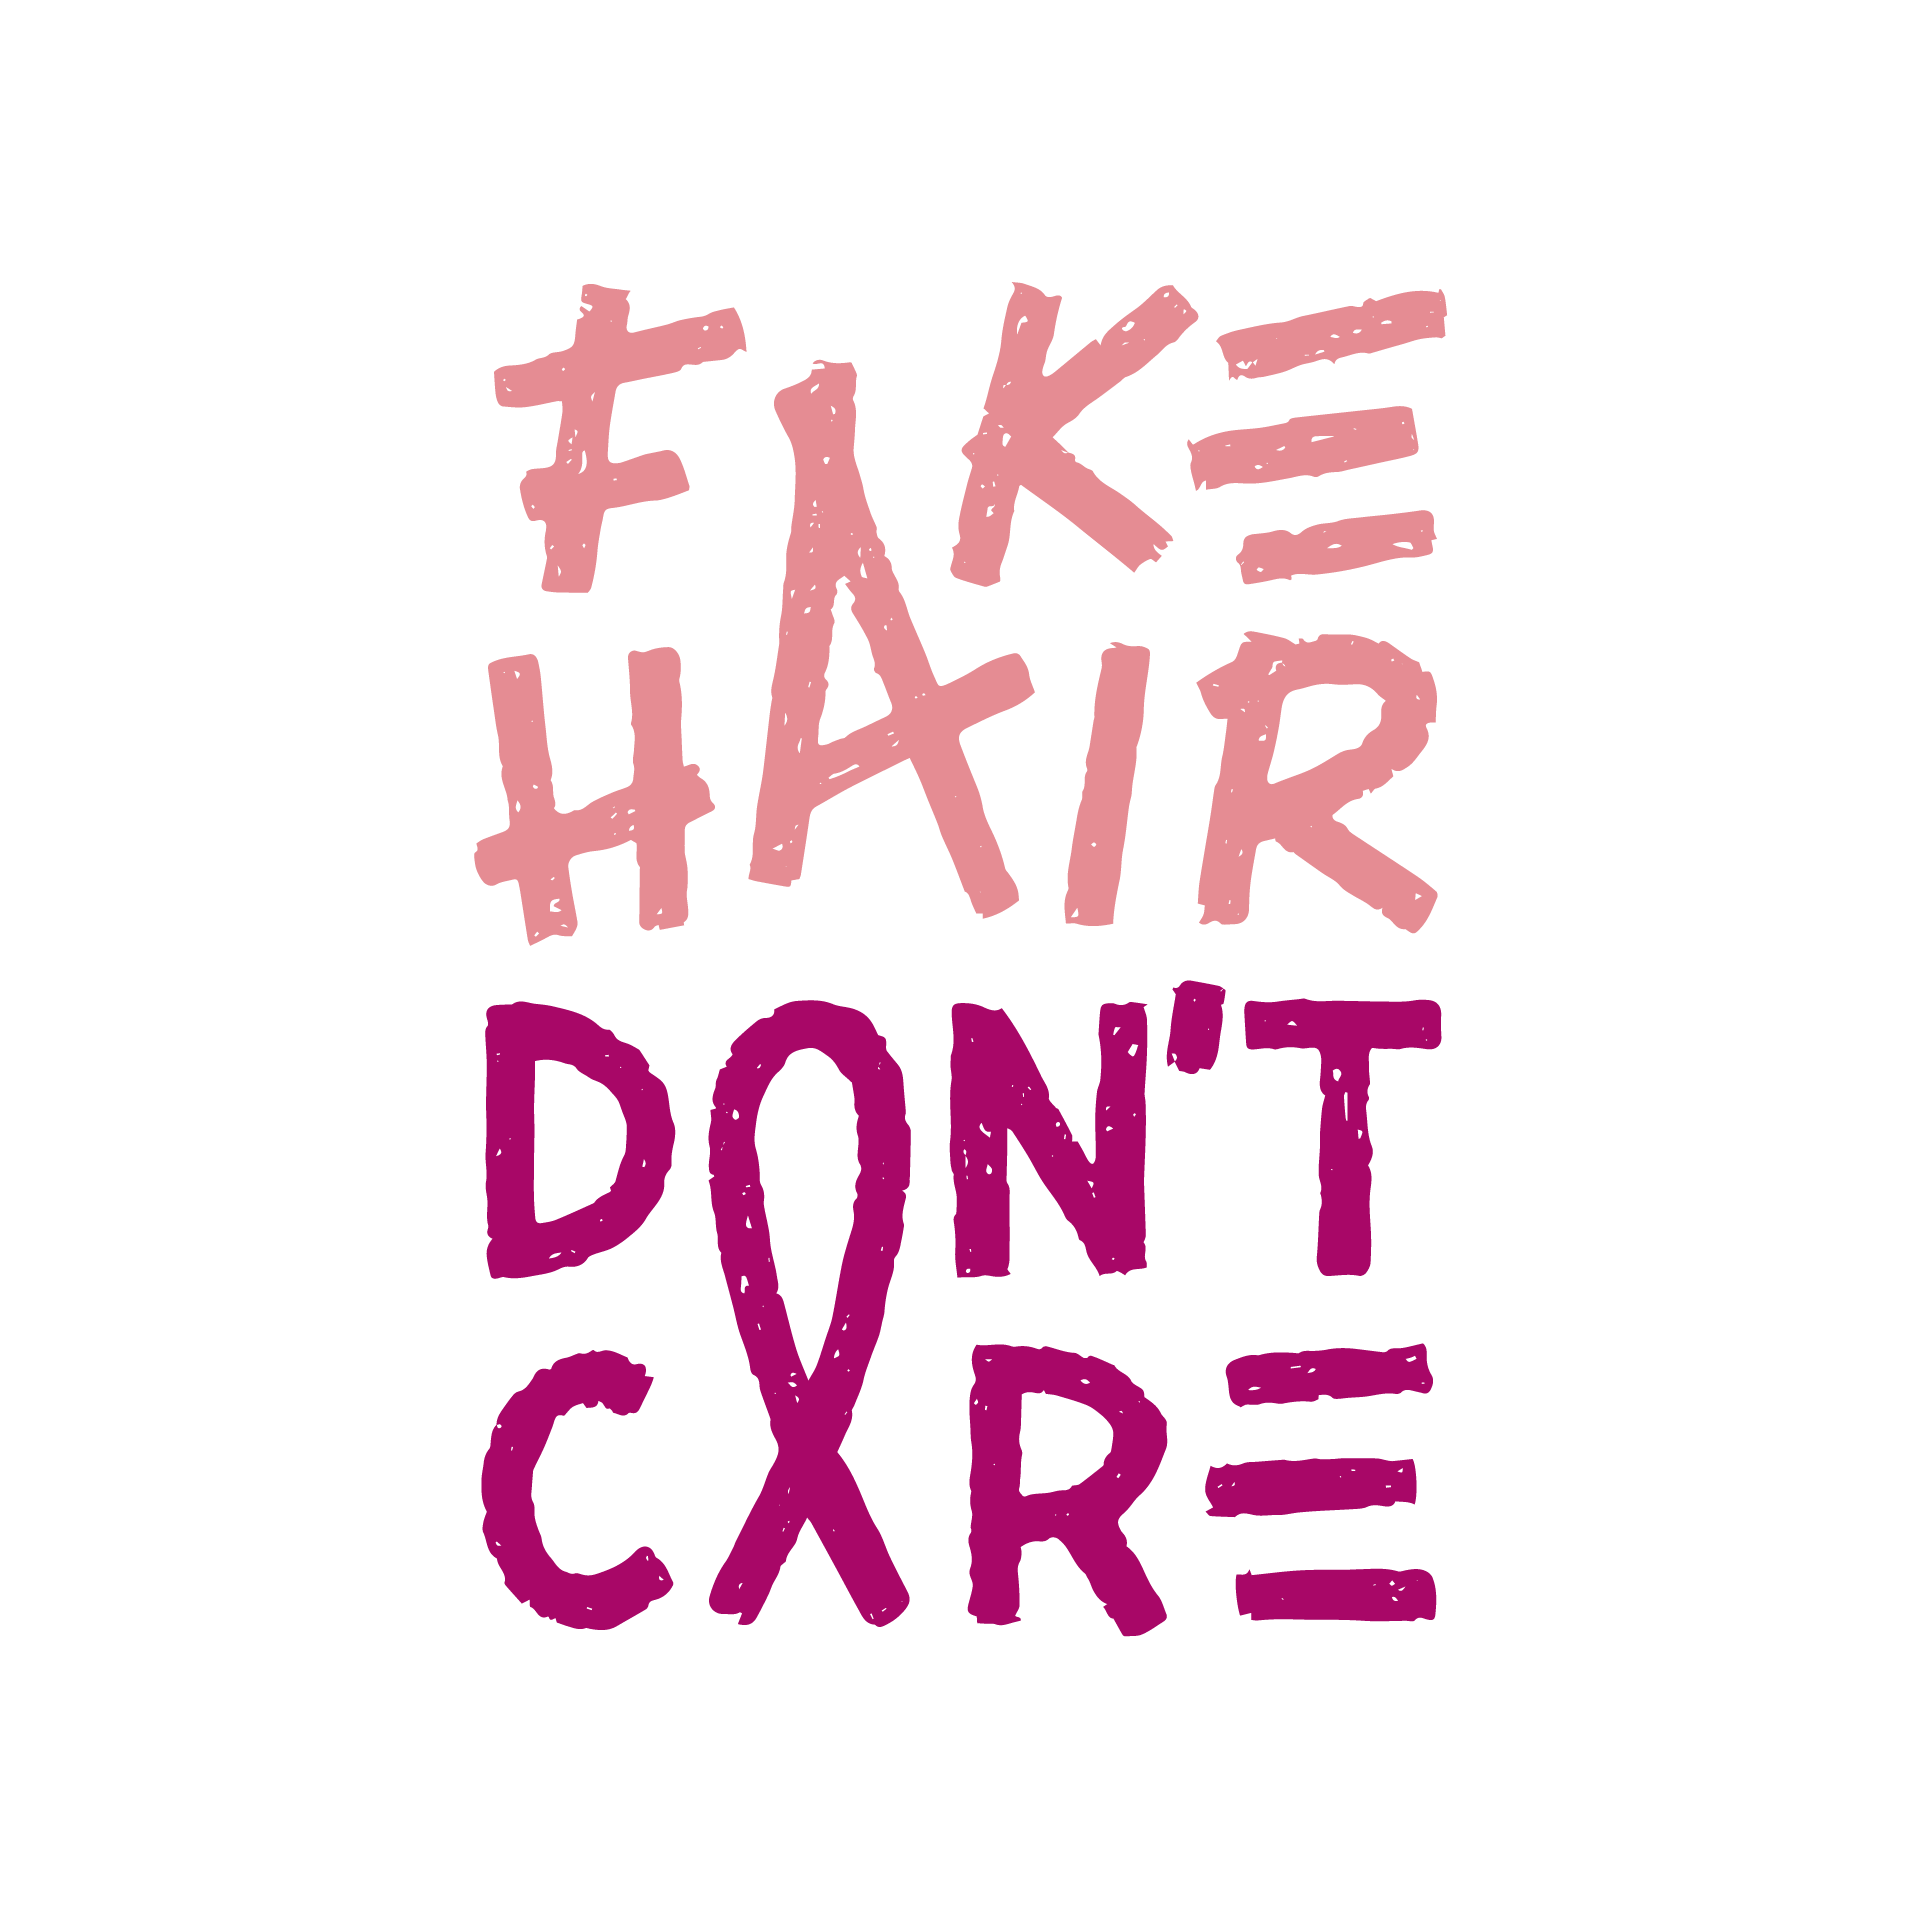 Fake Hair Don't Care